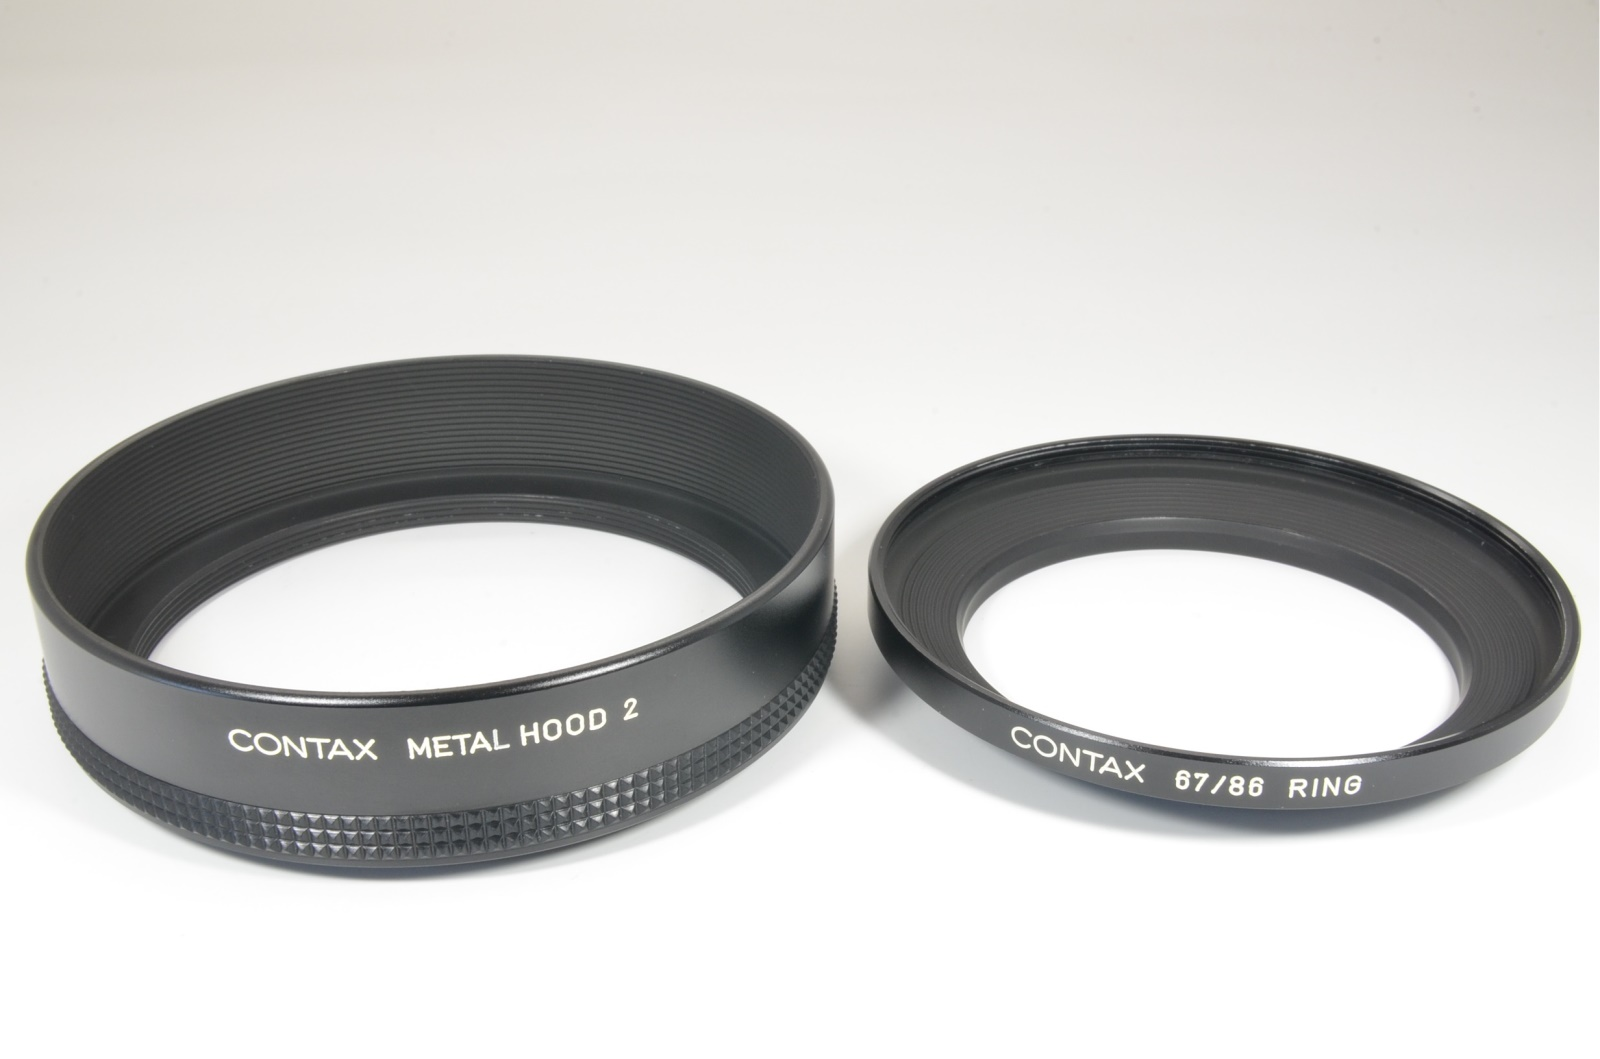 contax carl zeiss distagon t* 35mm f1.4 mmj made in japan with lens hoods shooting tested